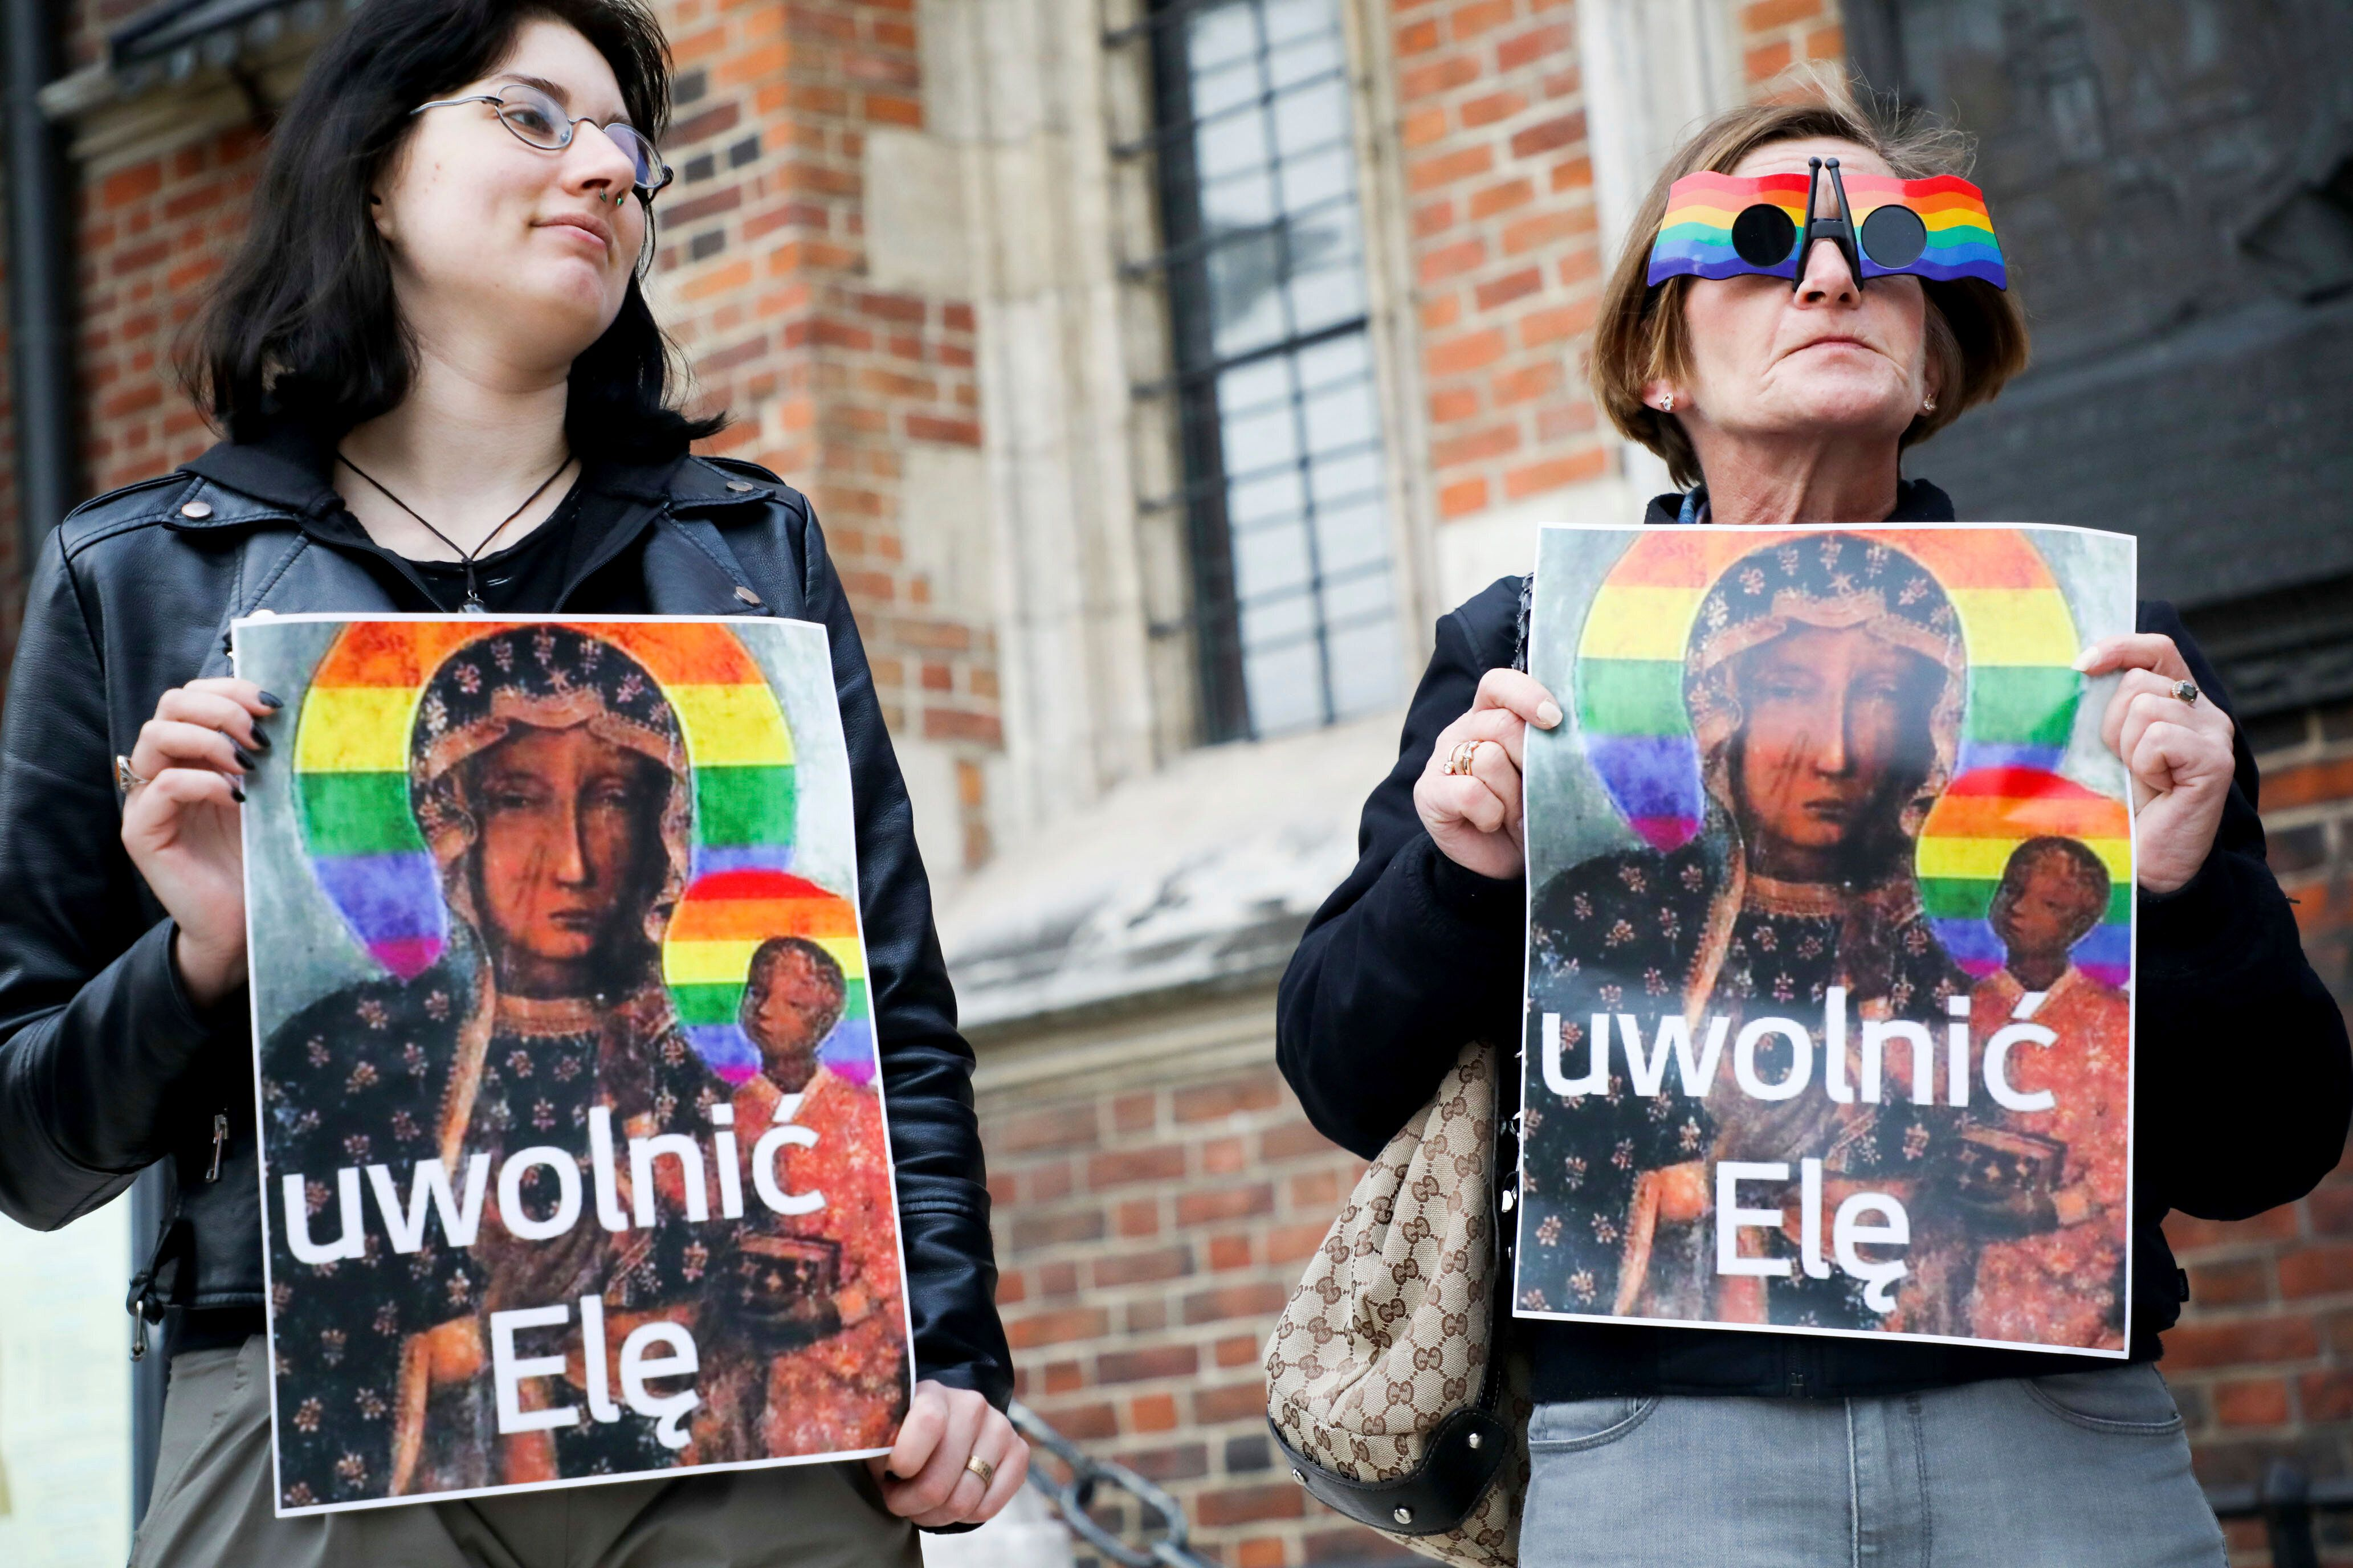 """Protesters in Krakow pose with an alternative version of a painting known as the """"Black Madonna of Częstochowa"""" o"""